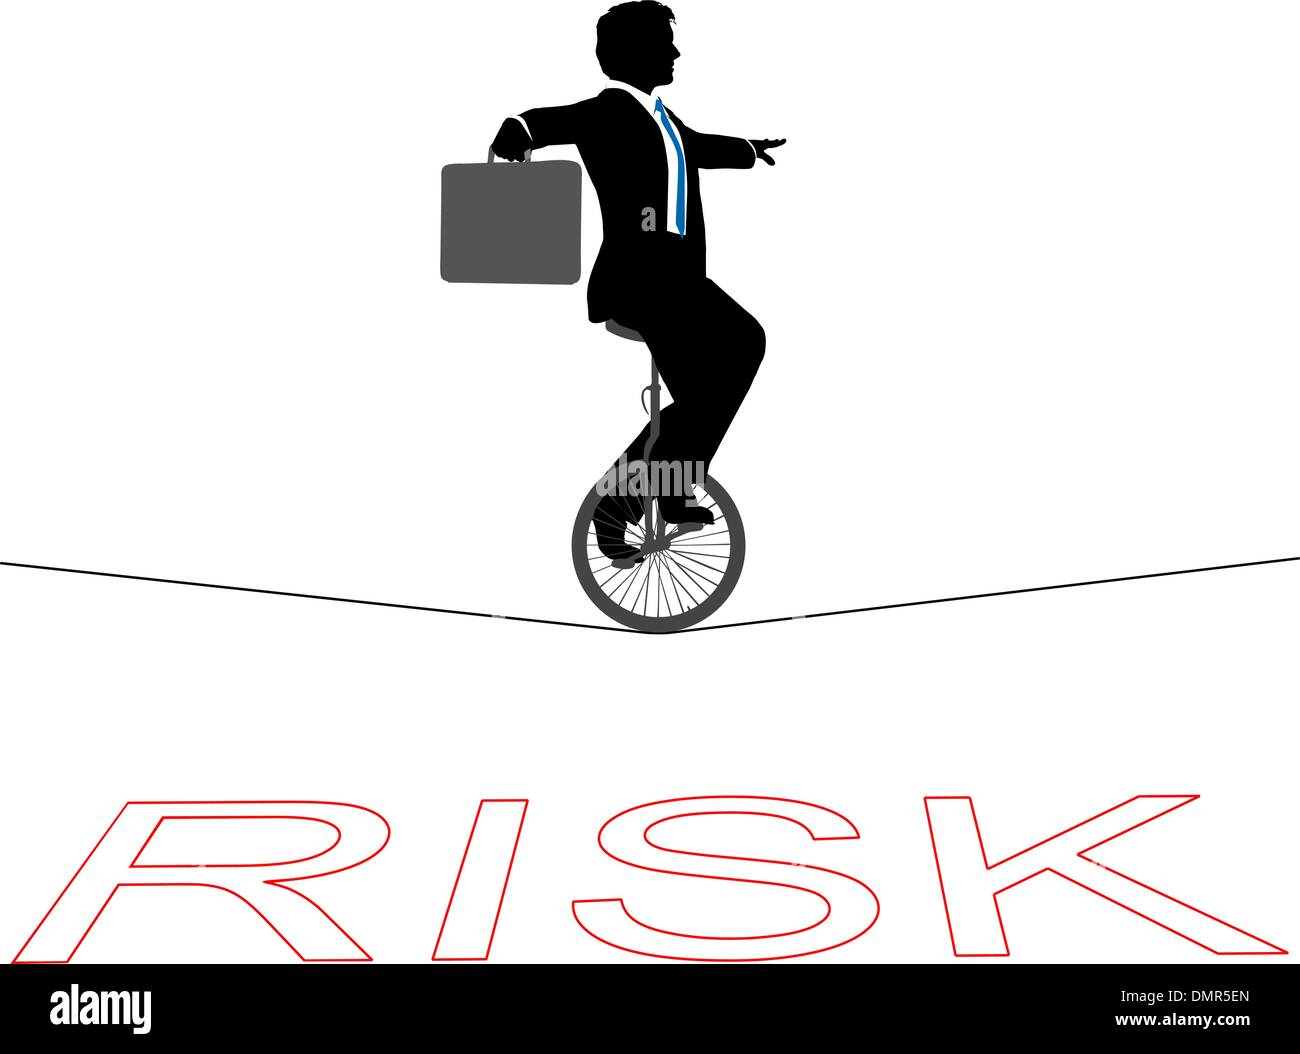 Business man unicycle tightrope over financial risk - Stock Vector